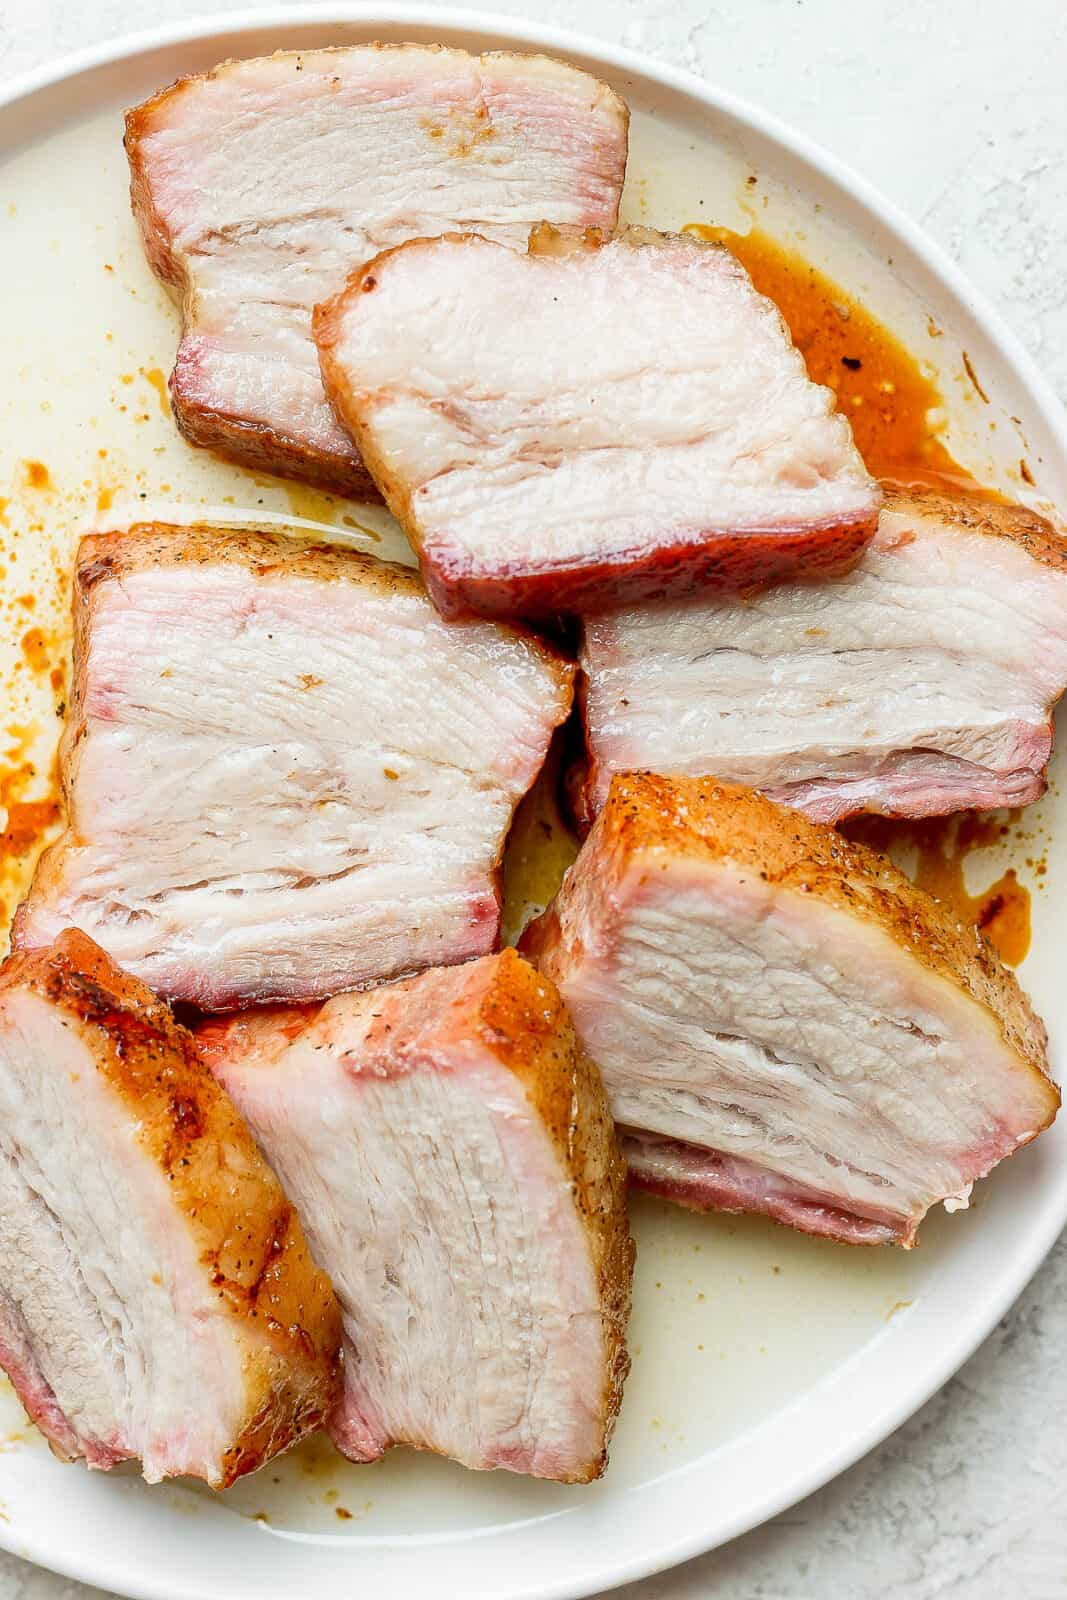 A plate of pork belly slices.